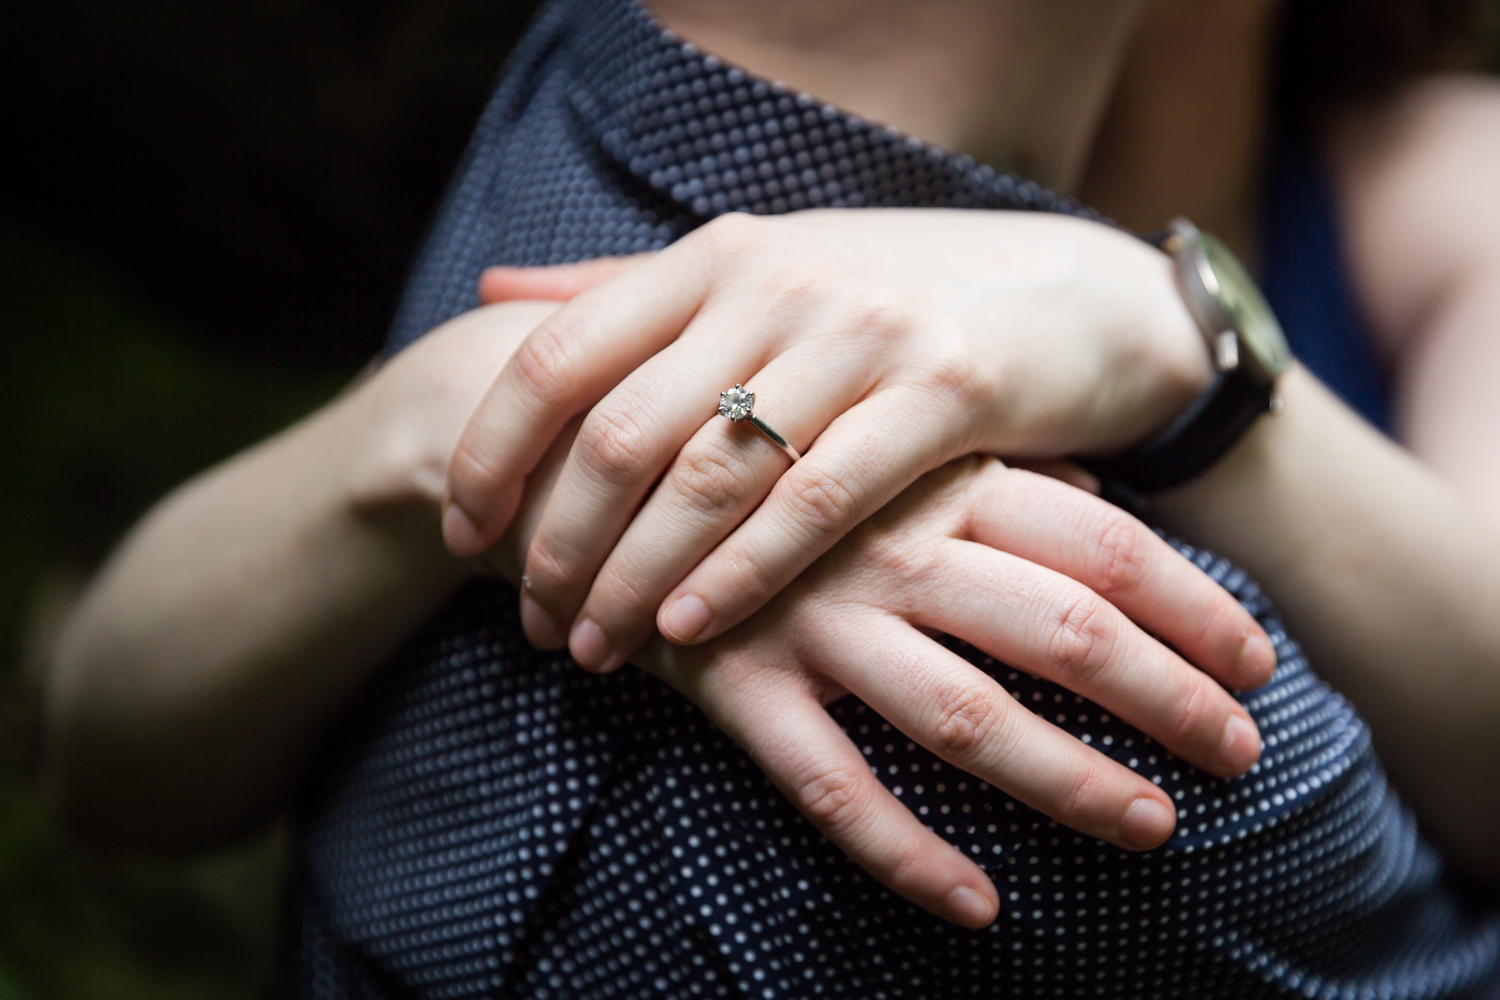 Close up of engagement ring on woman's hand